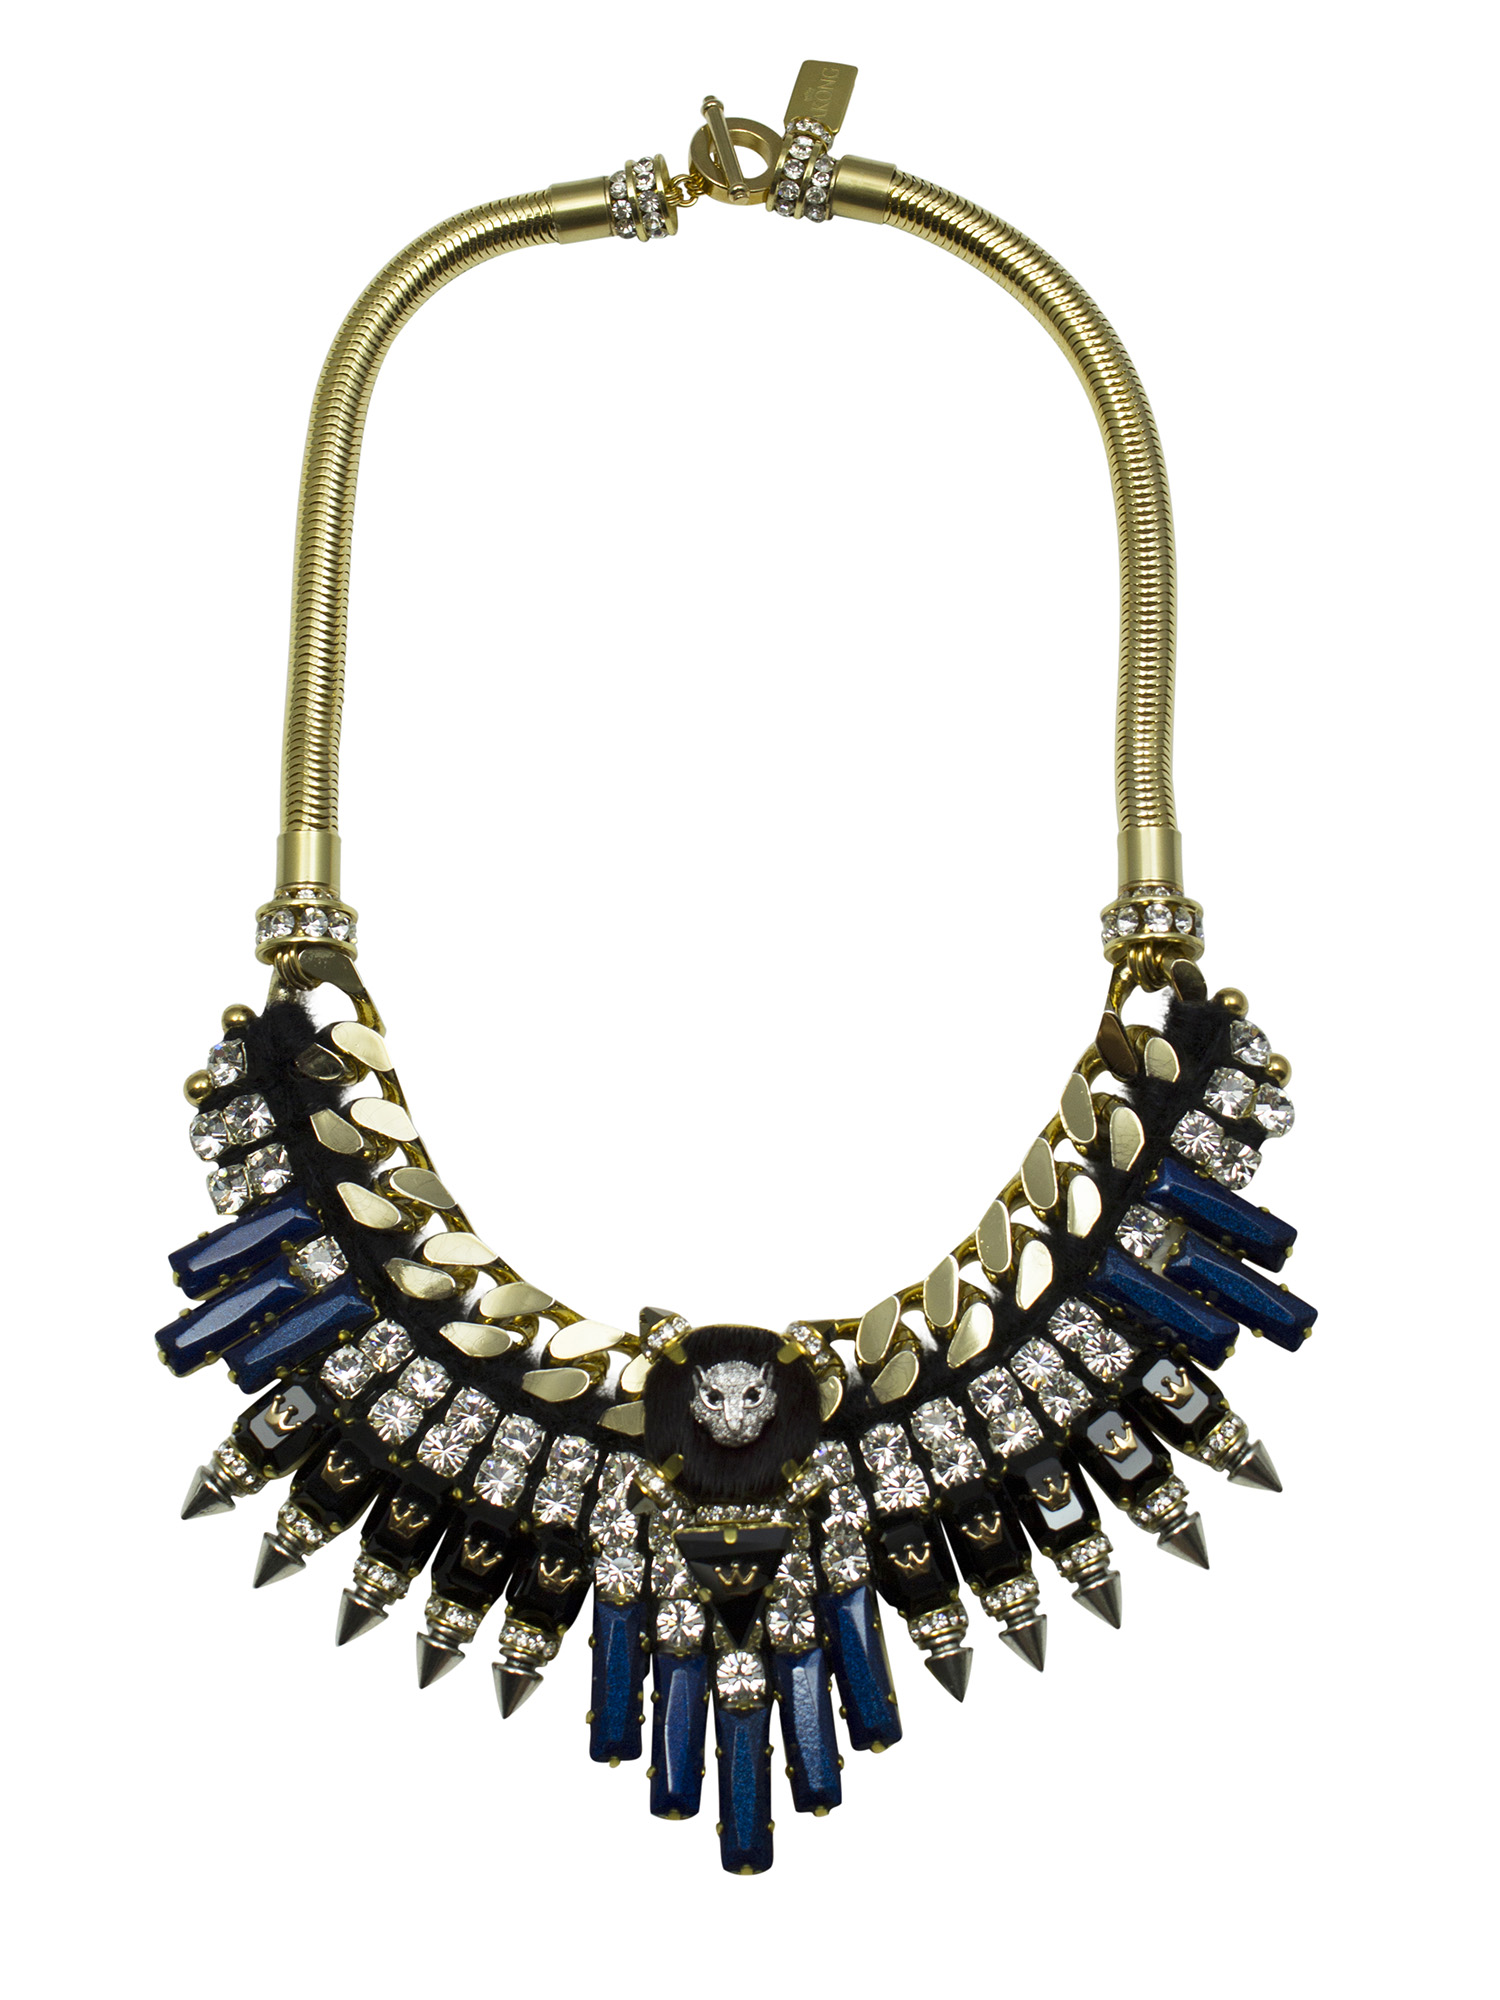 214N Crystal, Black & Blue Spiked Military Necklace.jpg